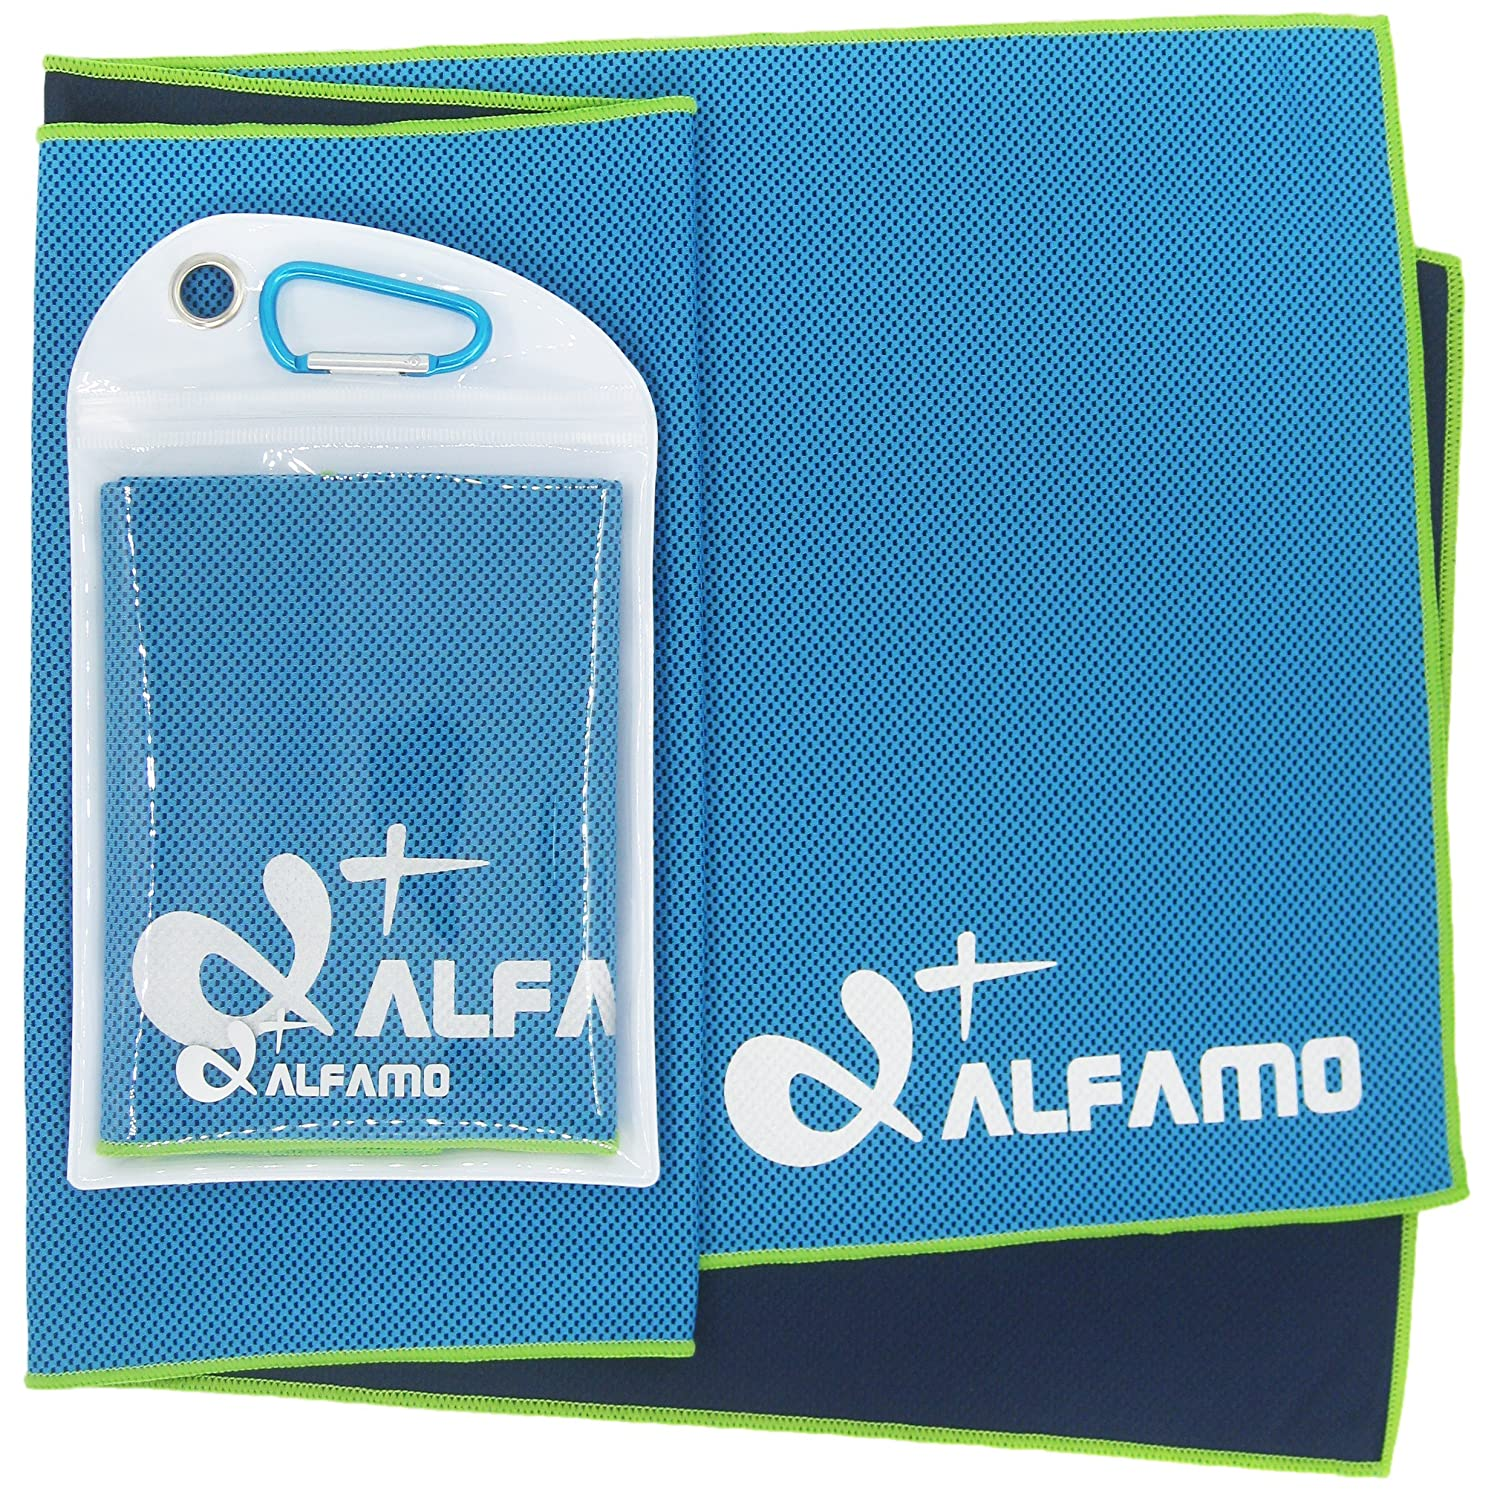 Yoga Fitness Alfamo Cooling Towel for Sports Gym Travel Pilates Camping /& More Workout